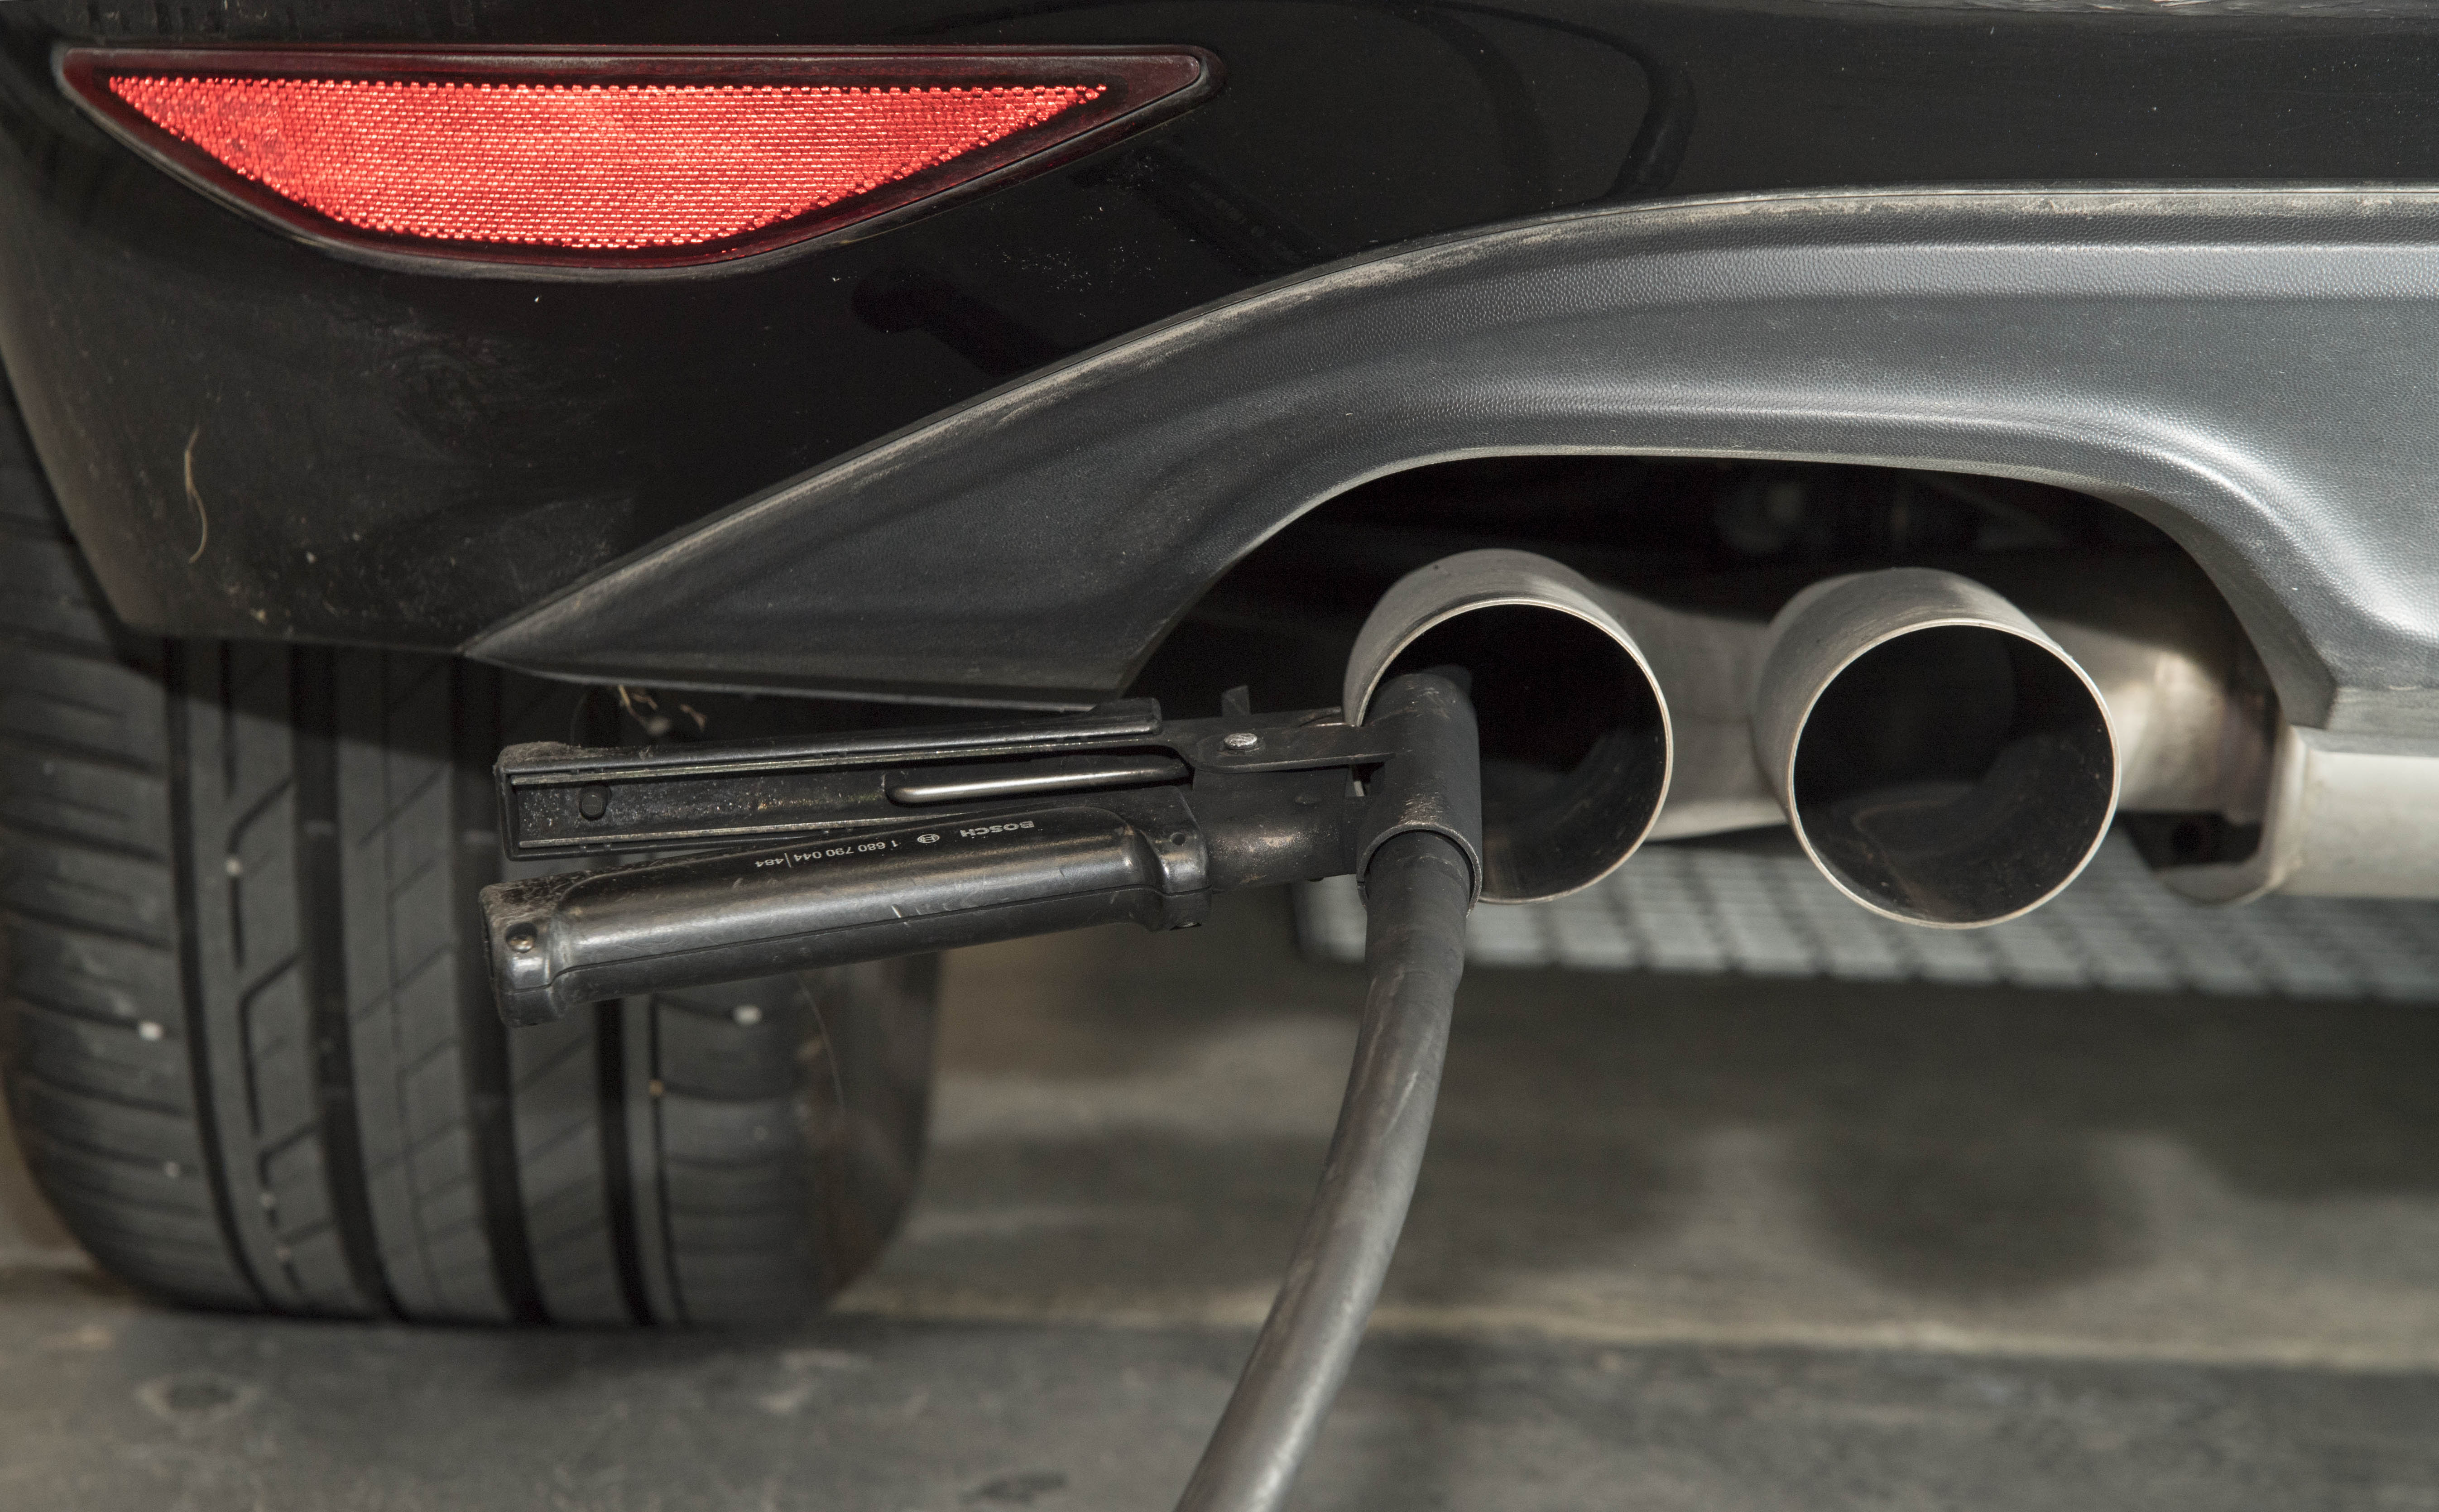 A hose for an emission test is fixed in the exhaust pipe of a car at the Technical Inspection Agency in Ludwigsburg, southwestern Germany, on Aug. 7, 2017.